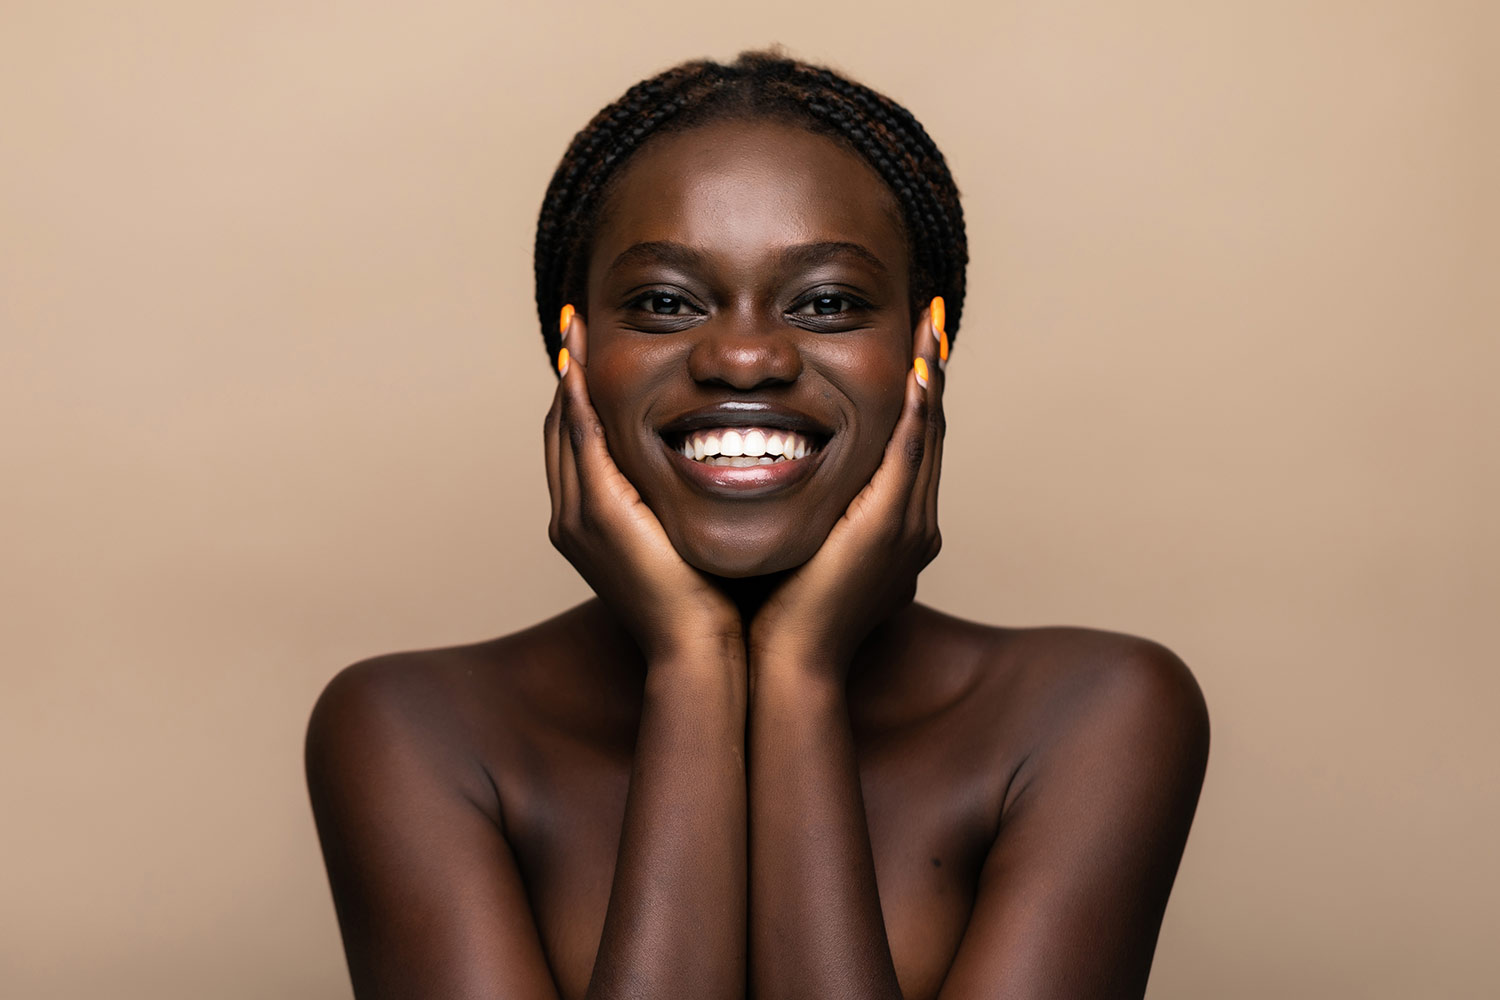 Afro-Caribbean photomodel - smiling female